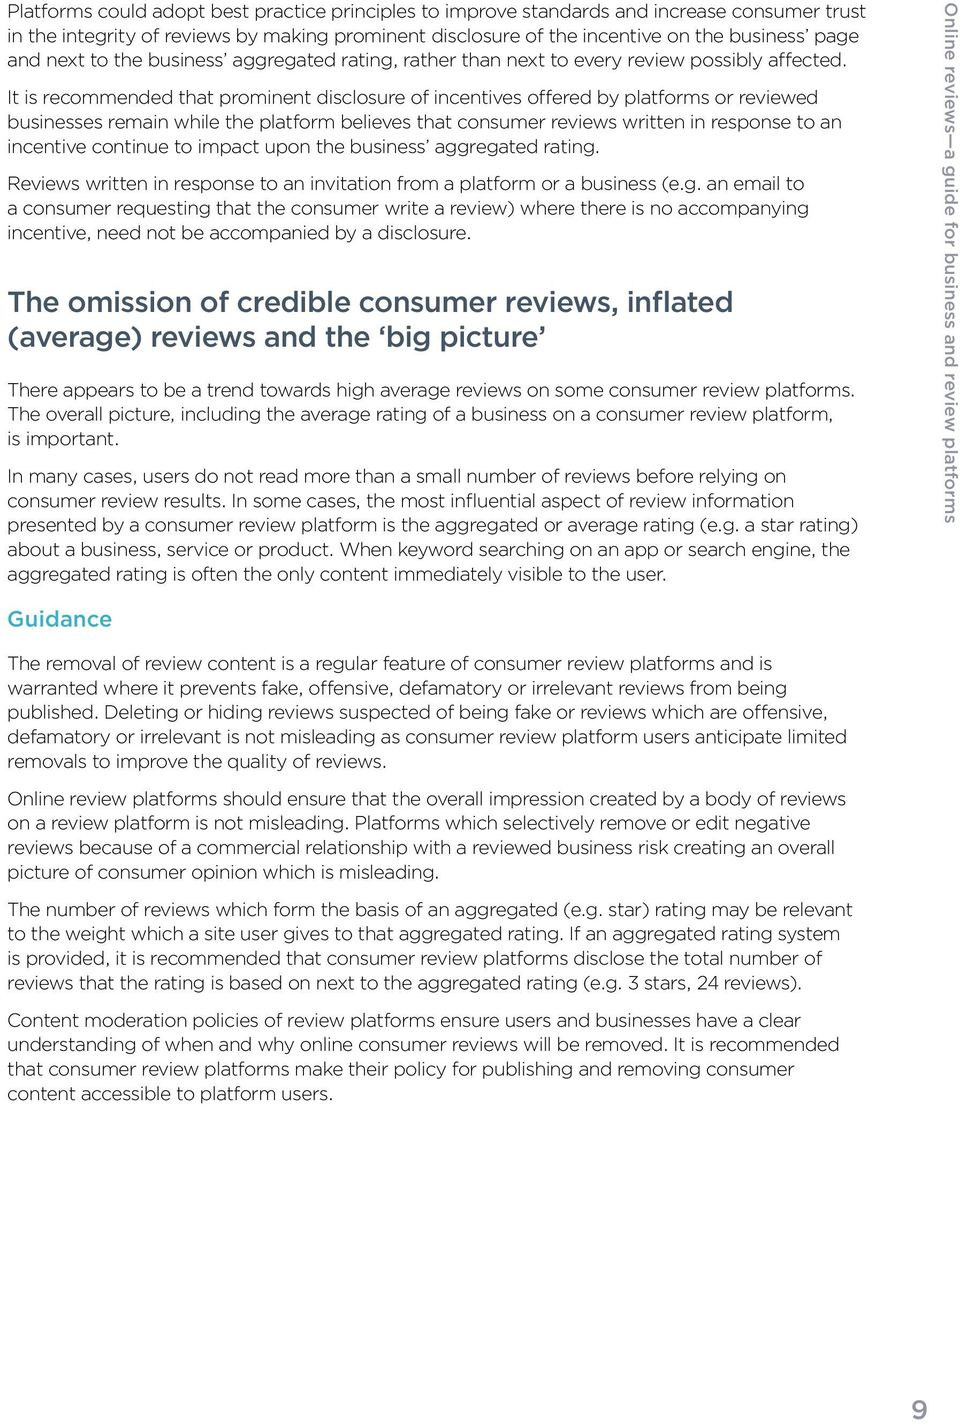 It is recommended that prominent disclosure of incentives offered by platforms or reviewed businesses remain while the platform believes that consumer reviews written in response to an incentive